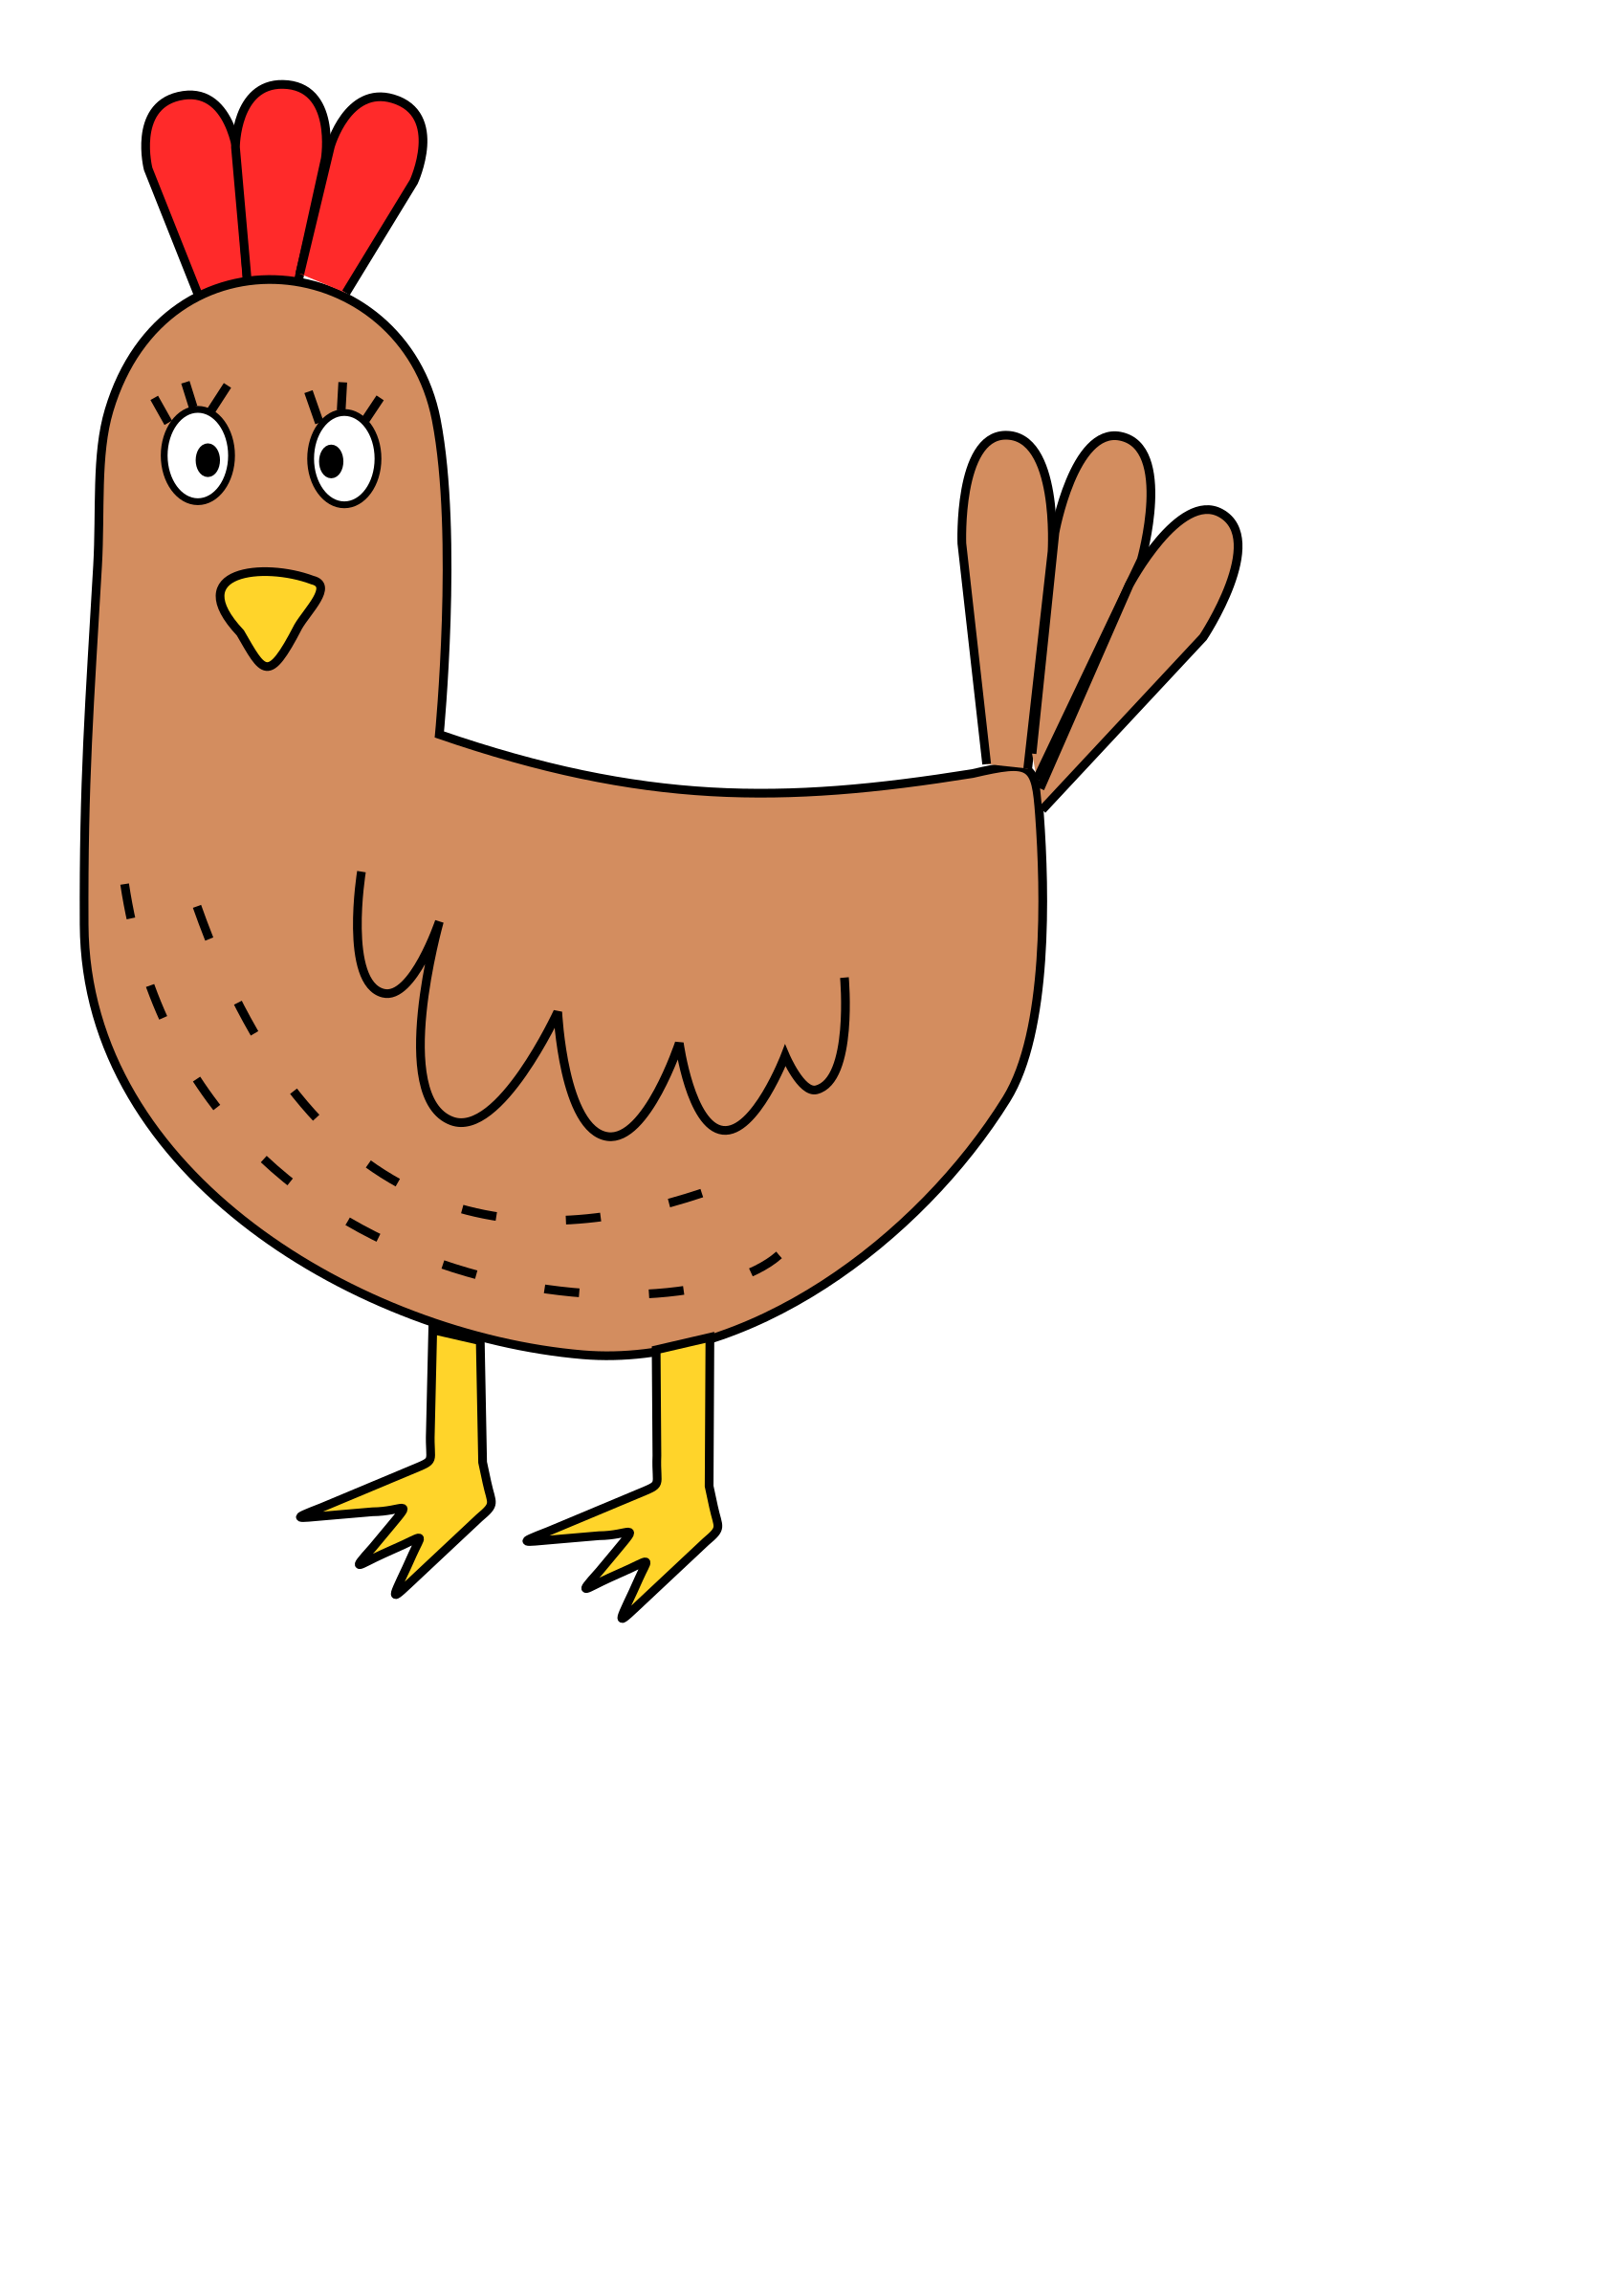 Cartoon chicken by Bingenberg